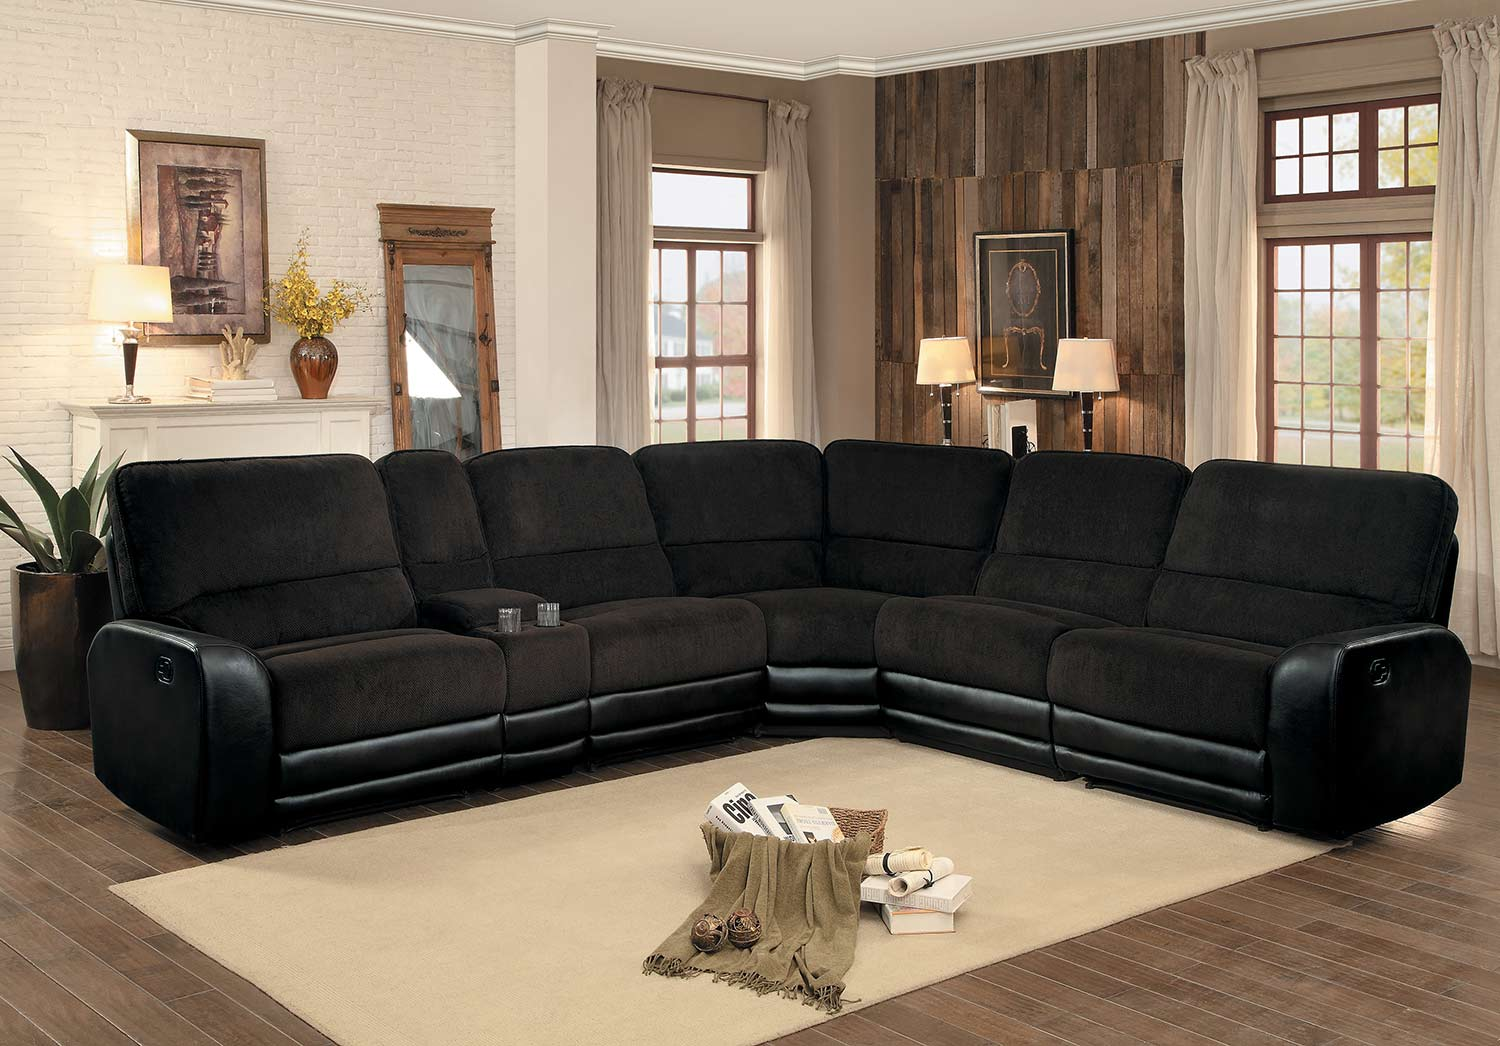 homelegance ynez reclining sectional set chocolate fabric leather gel 8212 sectional set at. Black Bedroom Furniture Sets. Home Design Ideas